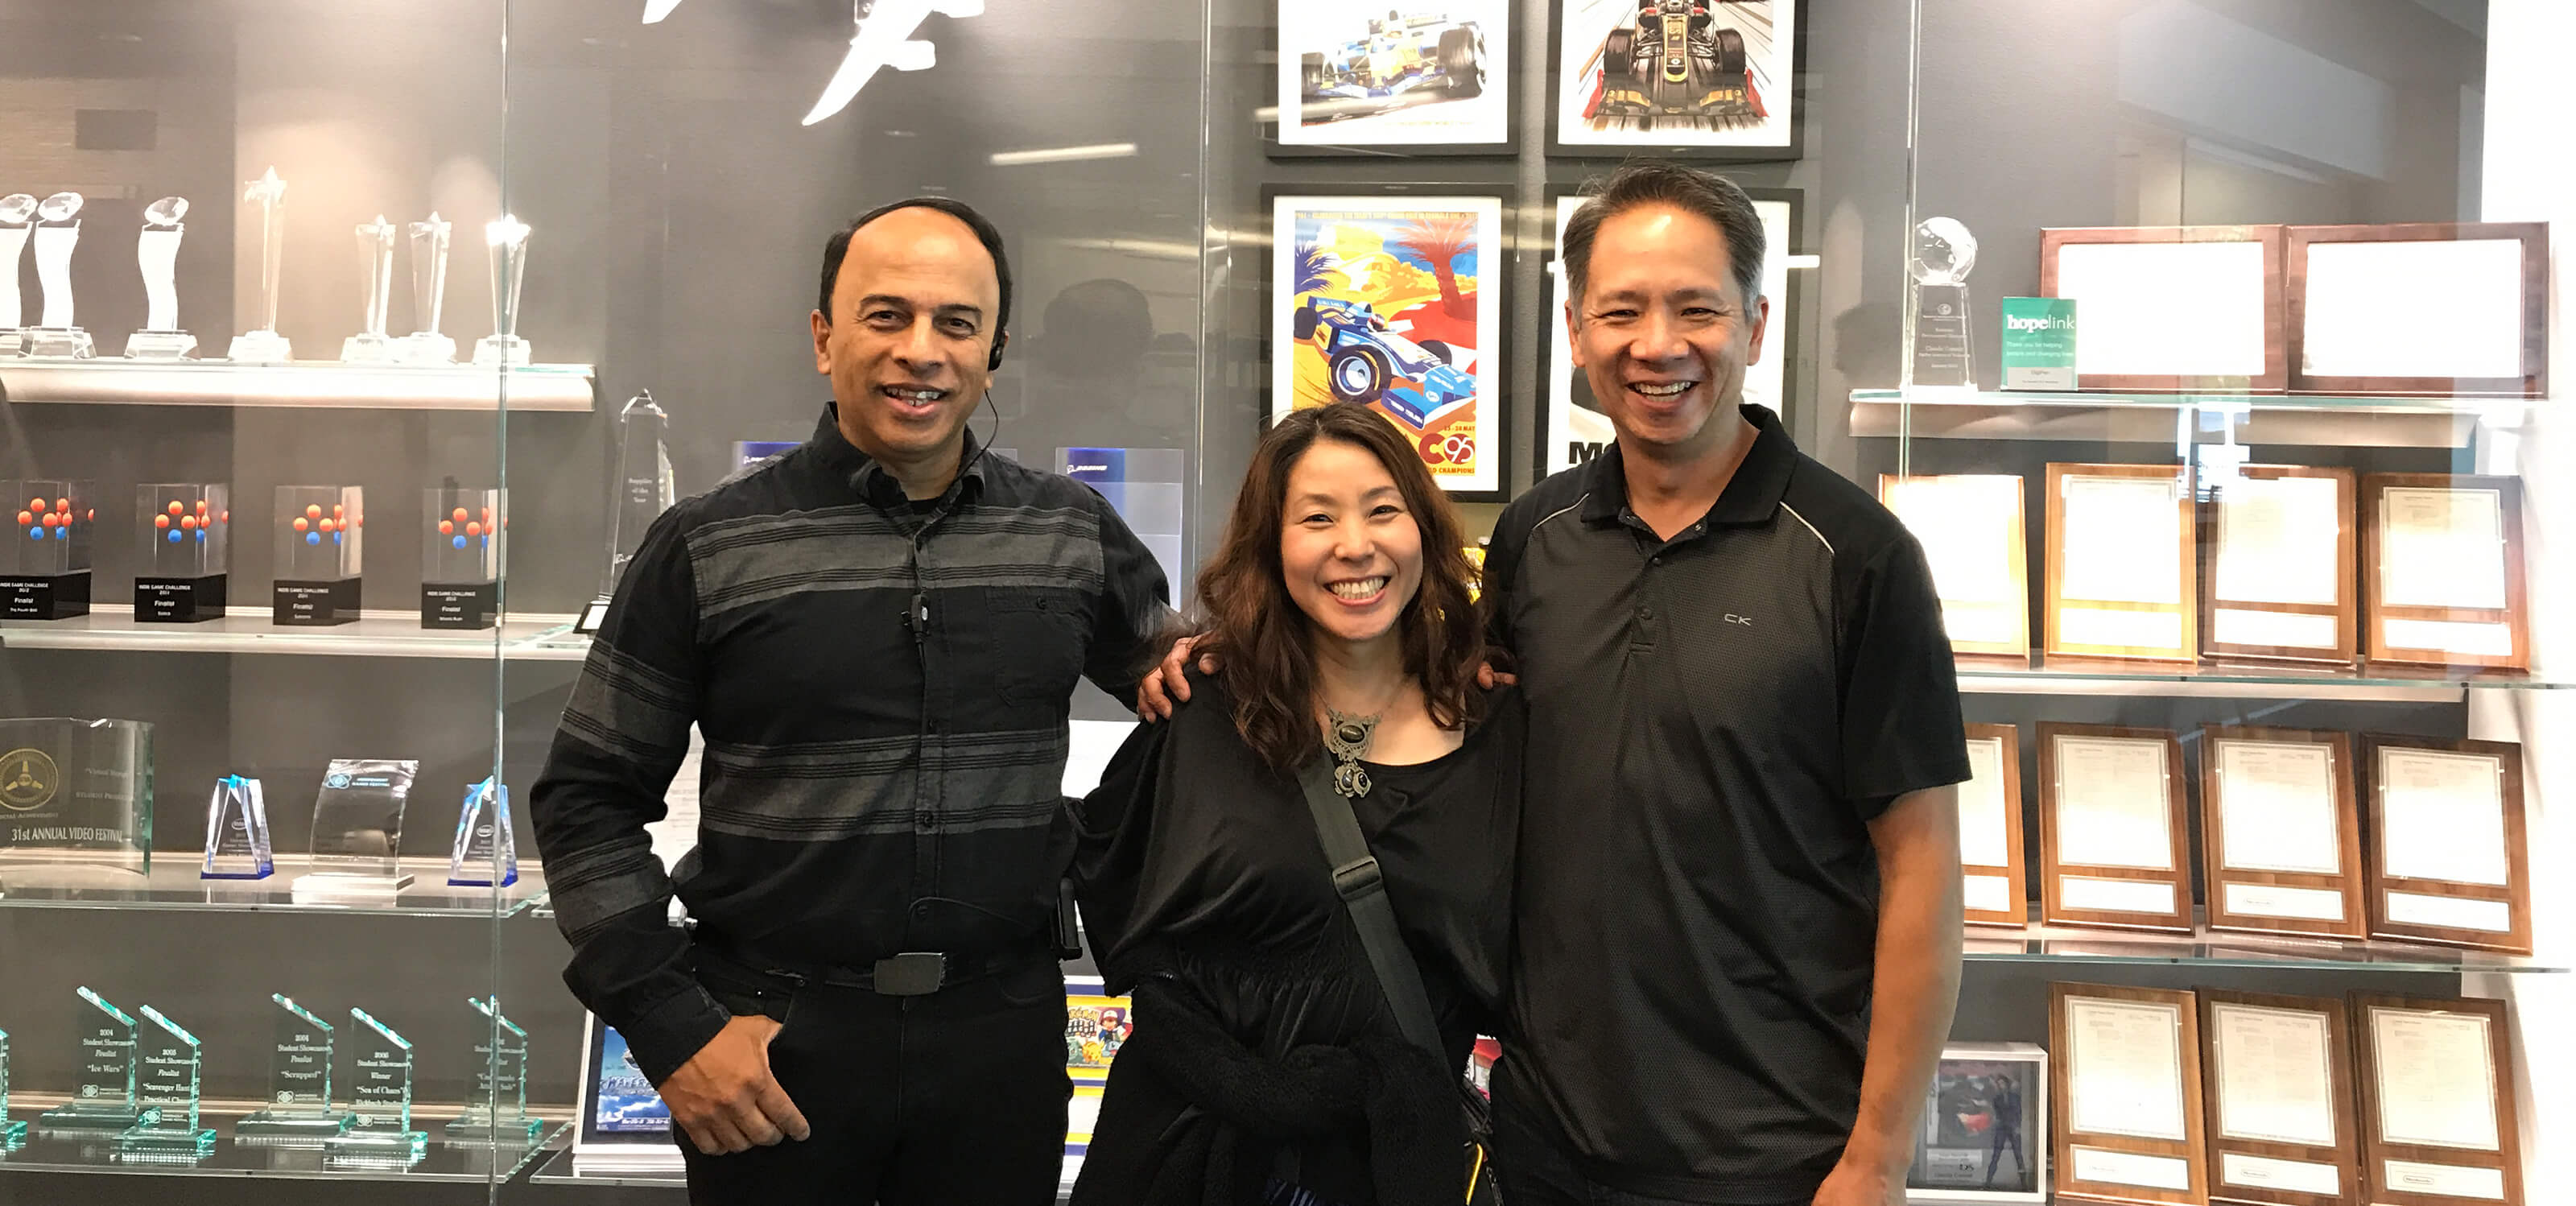 Satomi Asakawa stands next to her former DigiPen professors Ray Yan and Melvin Gonsalvez.